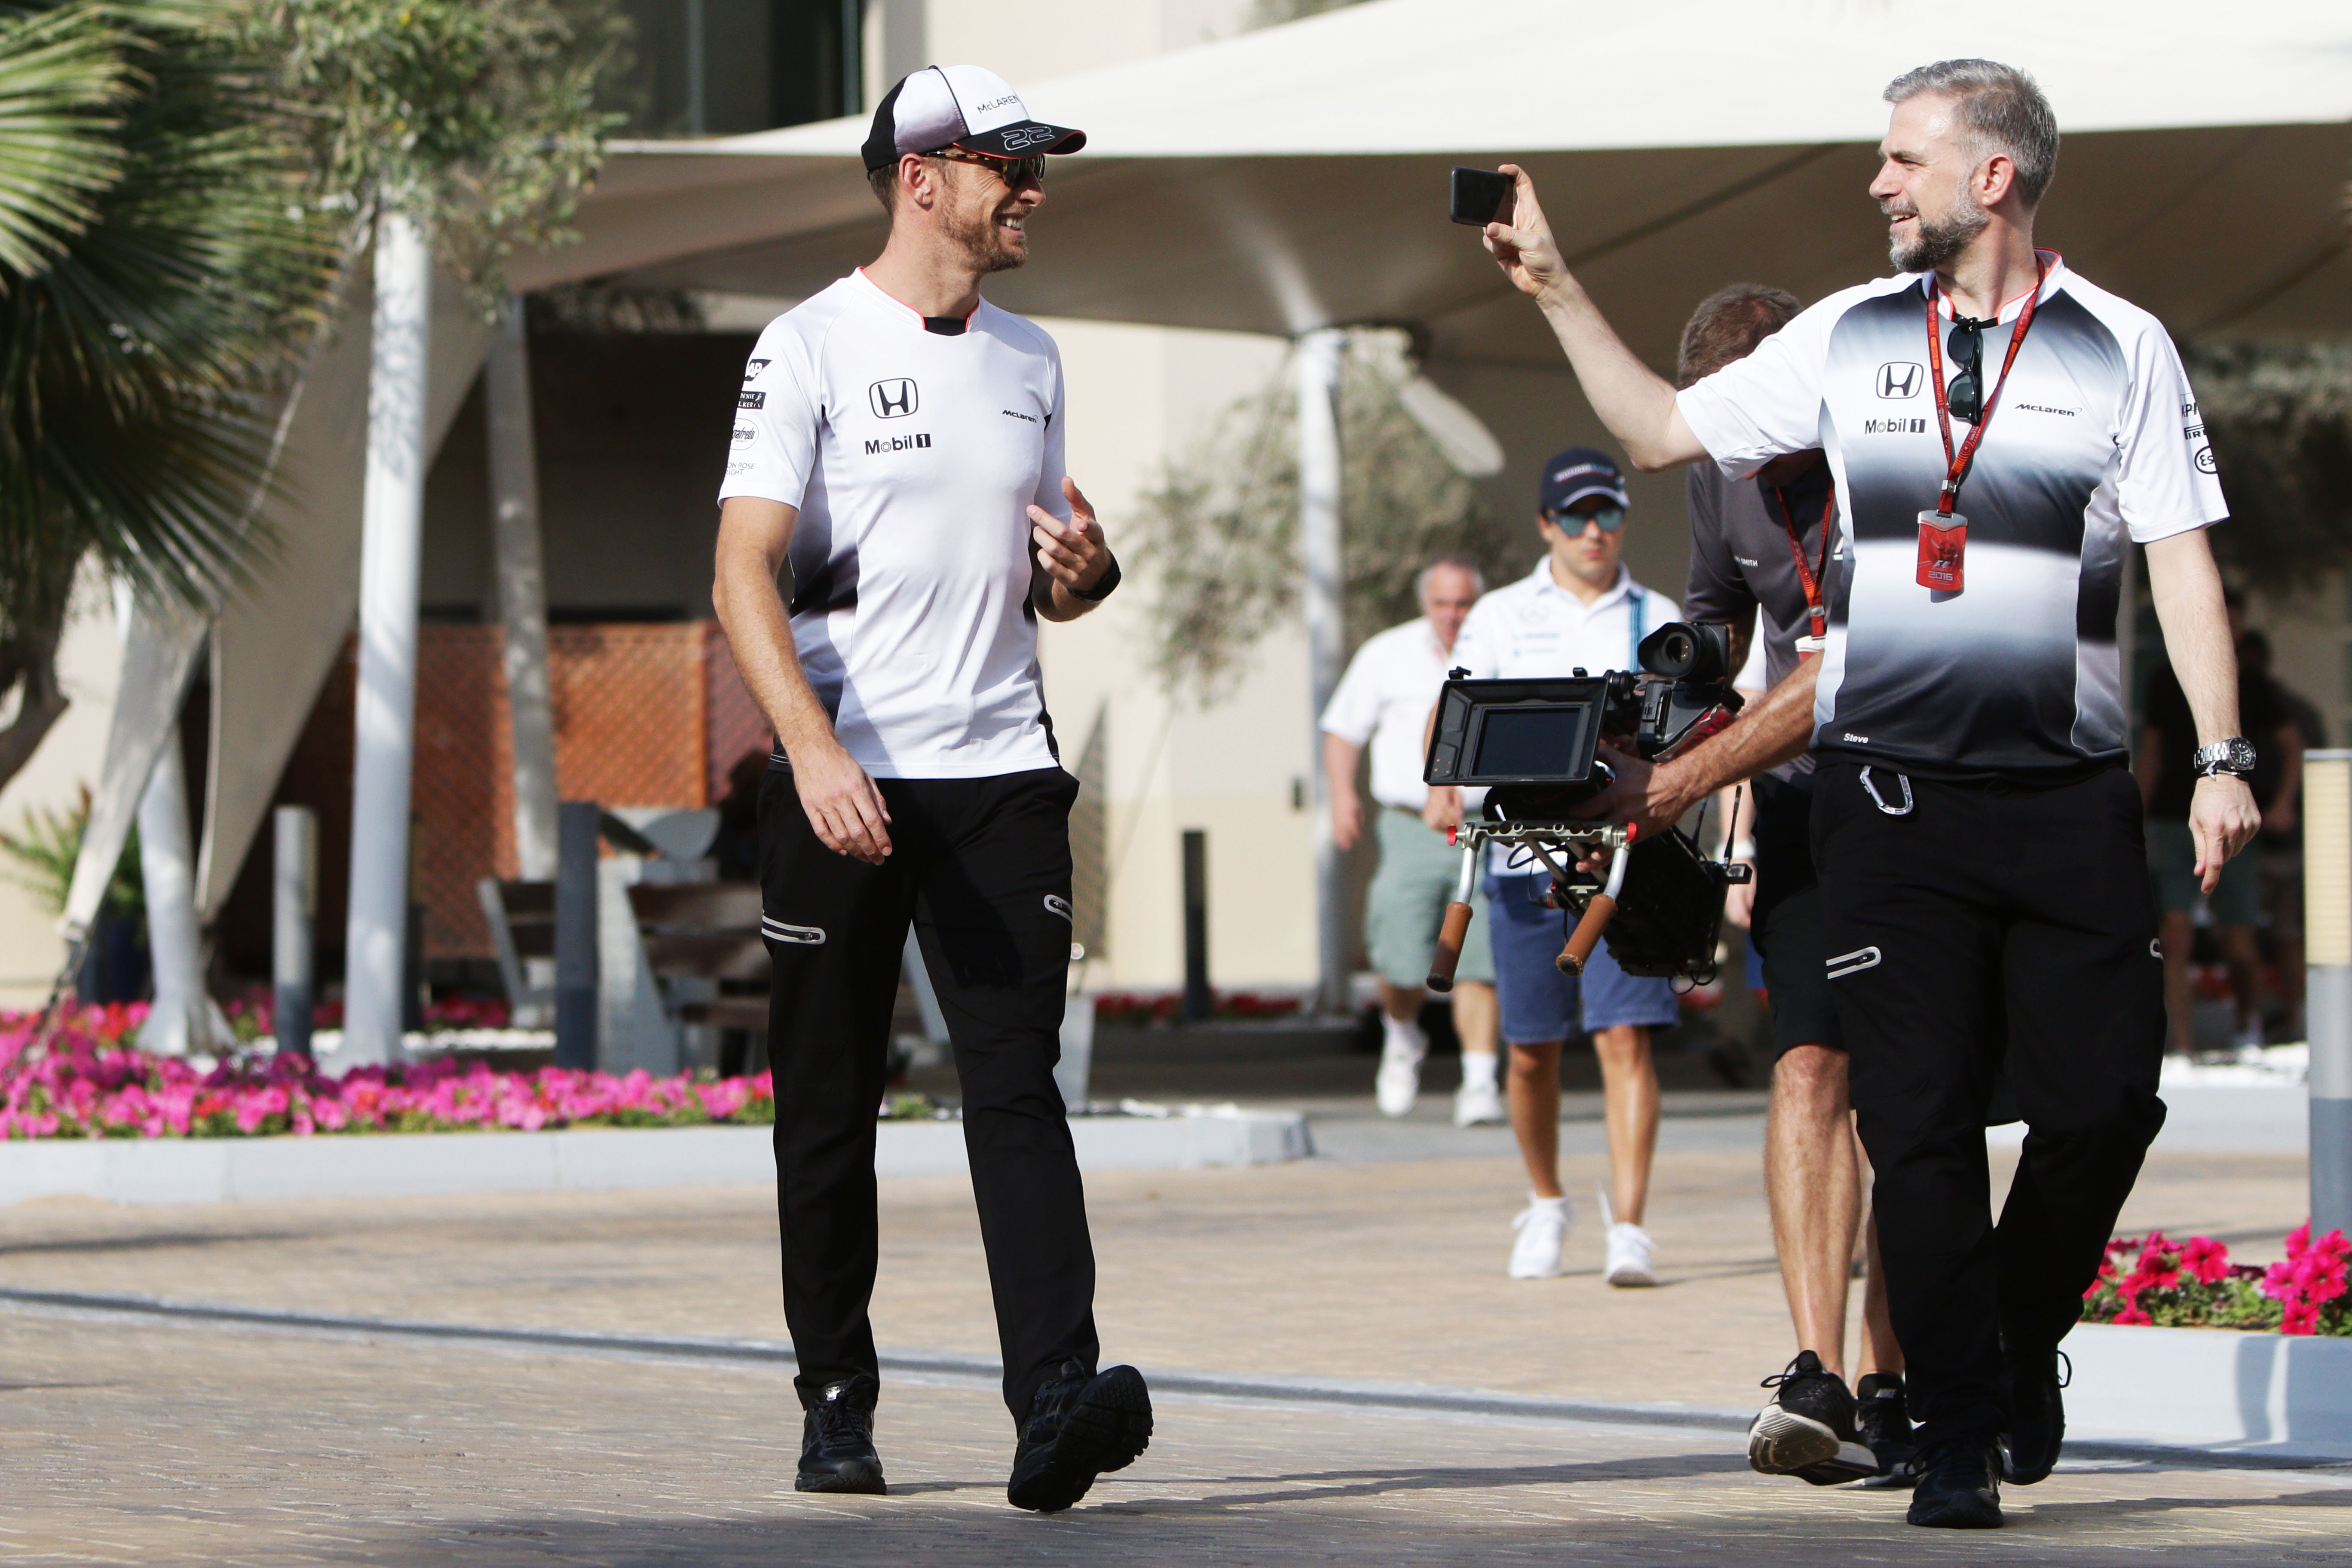 Formula One World Championship 2016, Round 21, Abu Dhabi Grand Prix, Abu Dhabi, United Arab Emirates, Thursday 24 November 2016 – Jenson Button (GBR) McLaren with Steve Cooper (GBR) McLaren Press Officer.